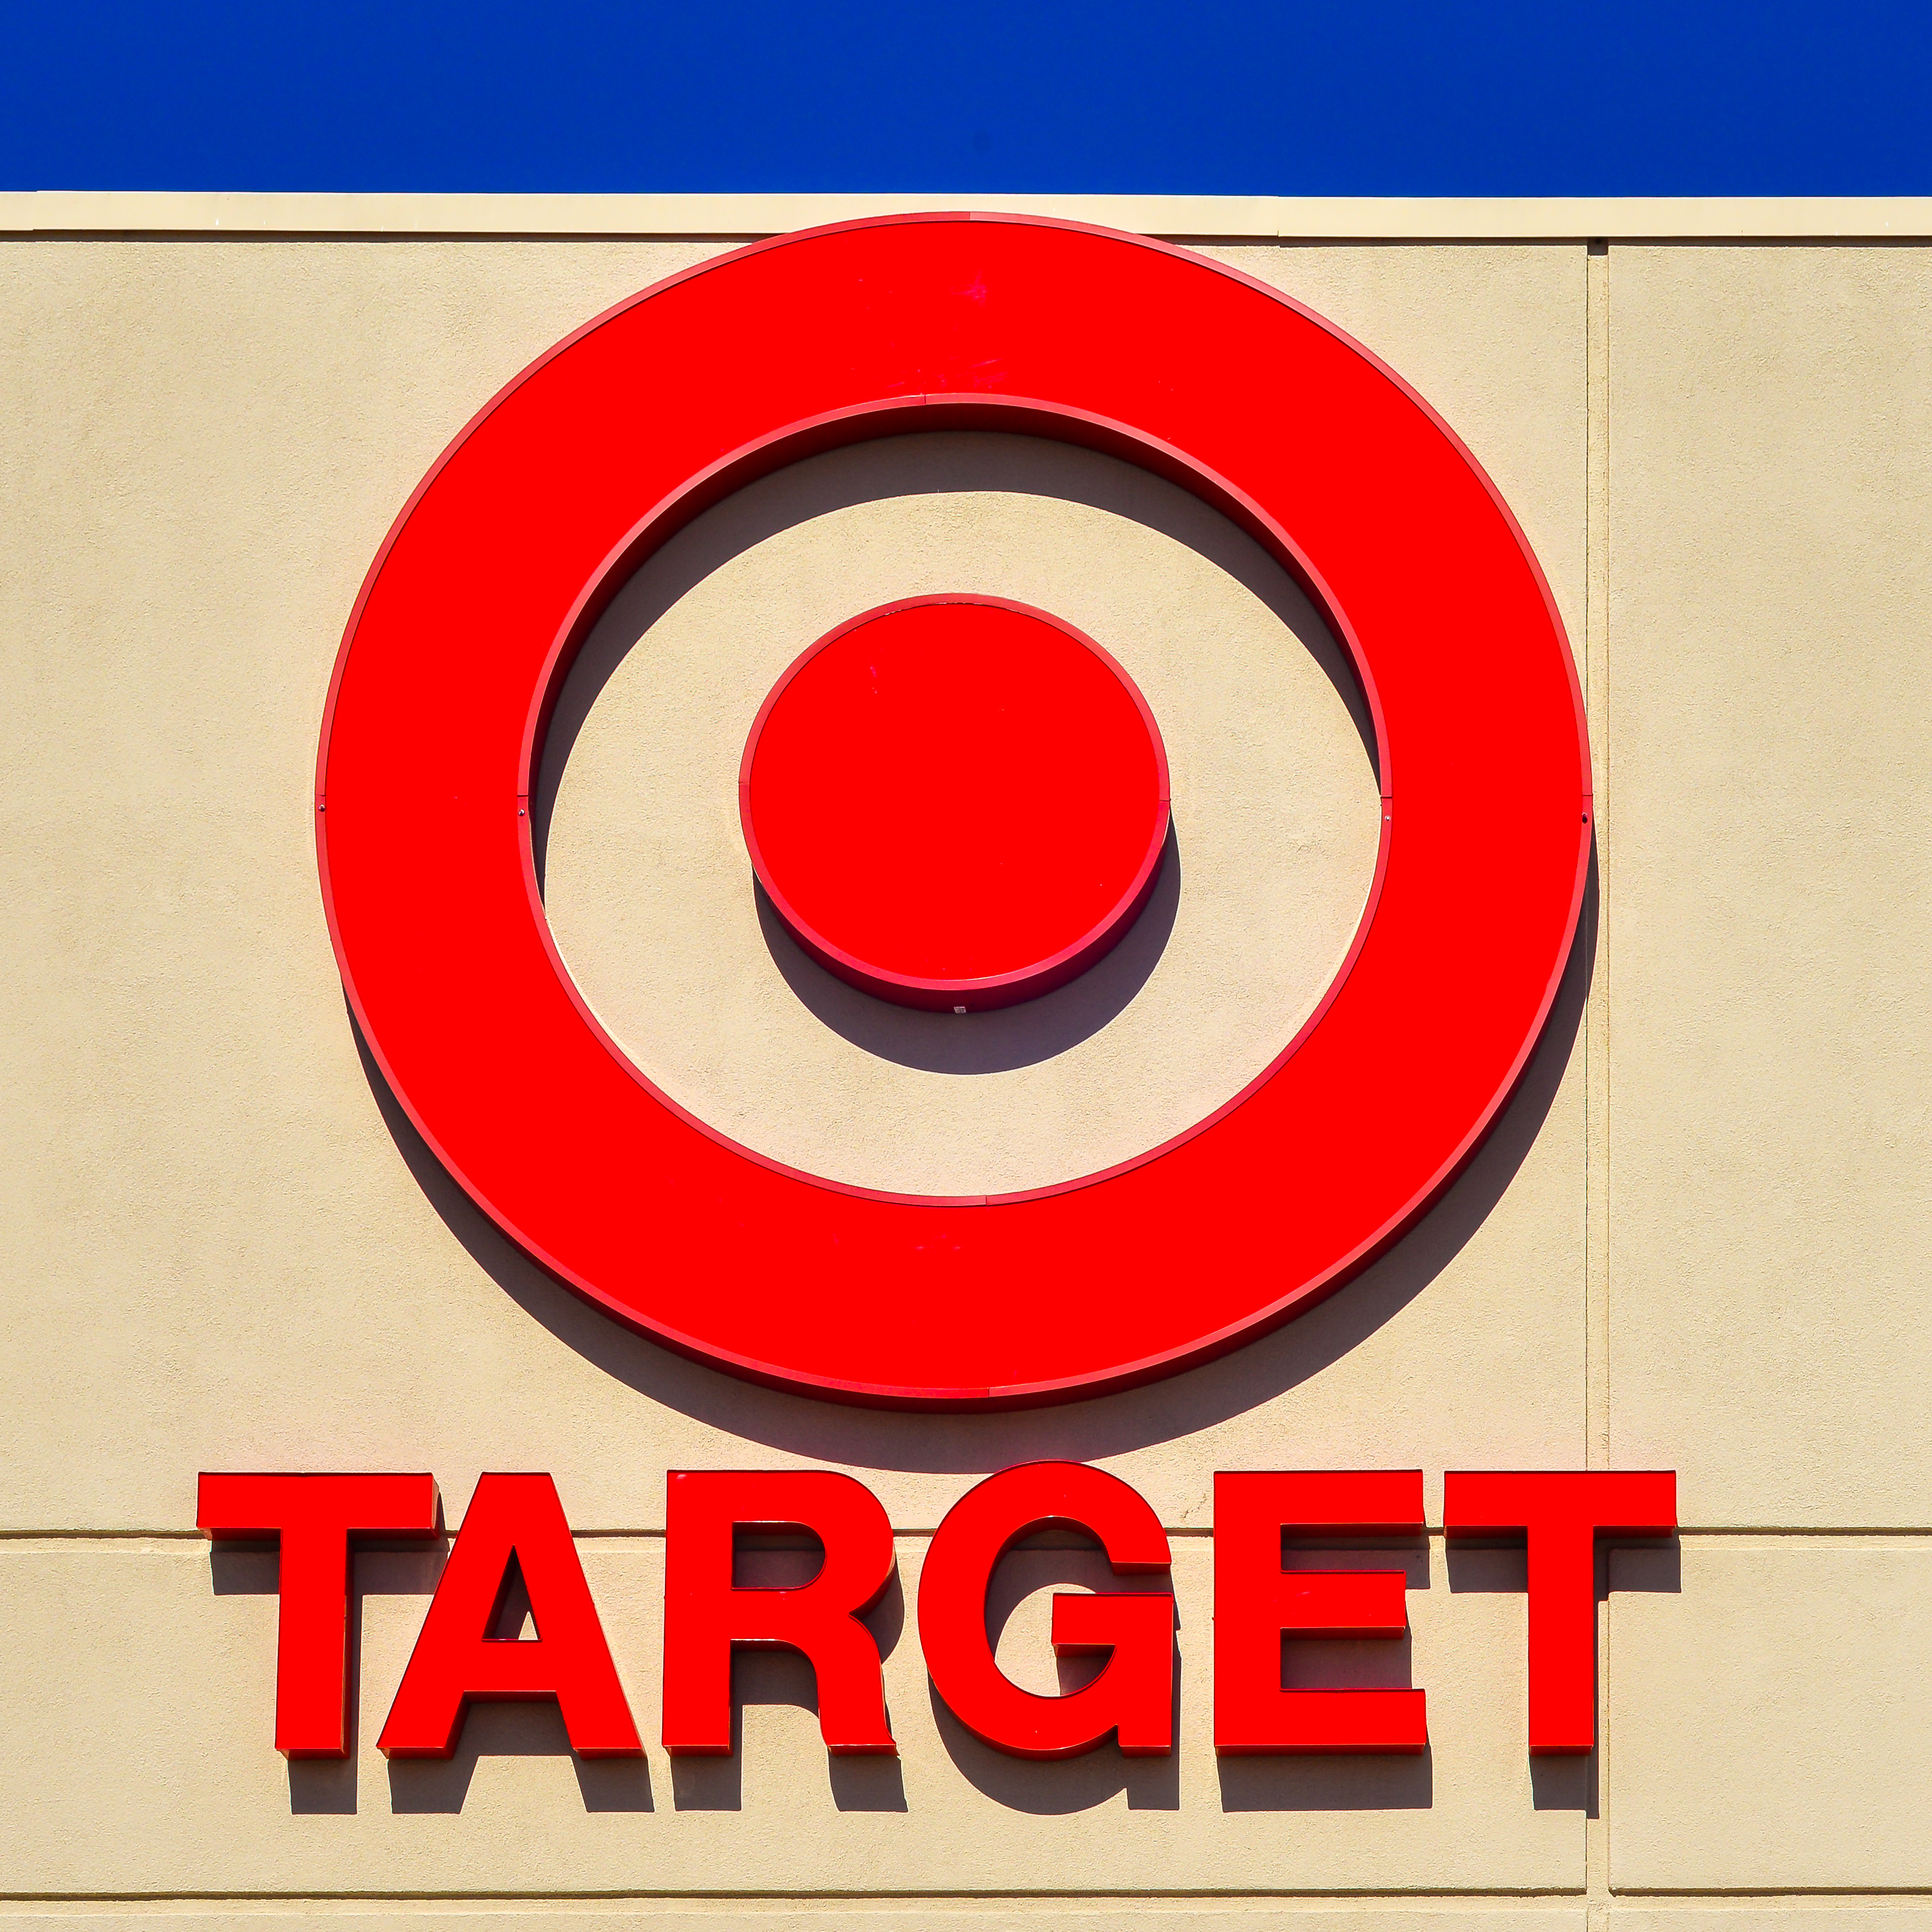 Target's $7 Billion Bet: 2 Years Later